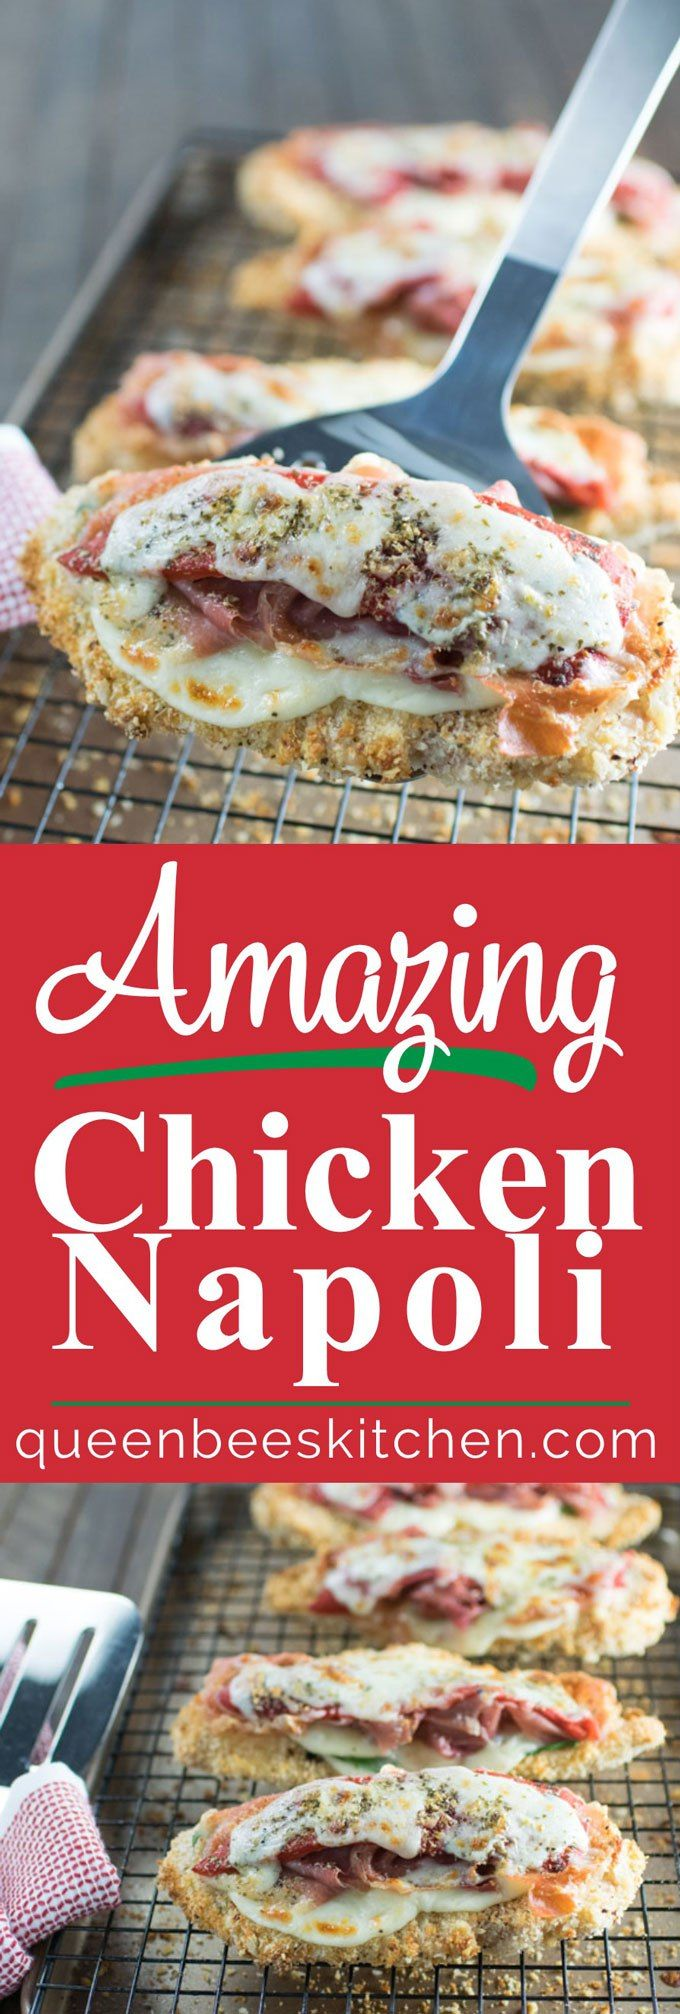 Delicious and easy to make Chicken Napoli - Amazing!!